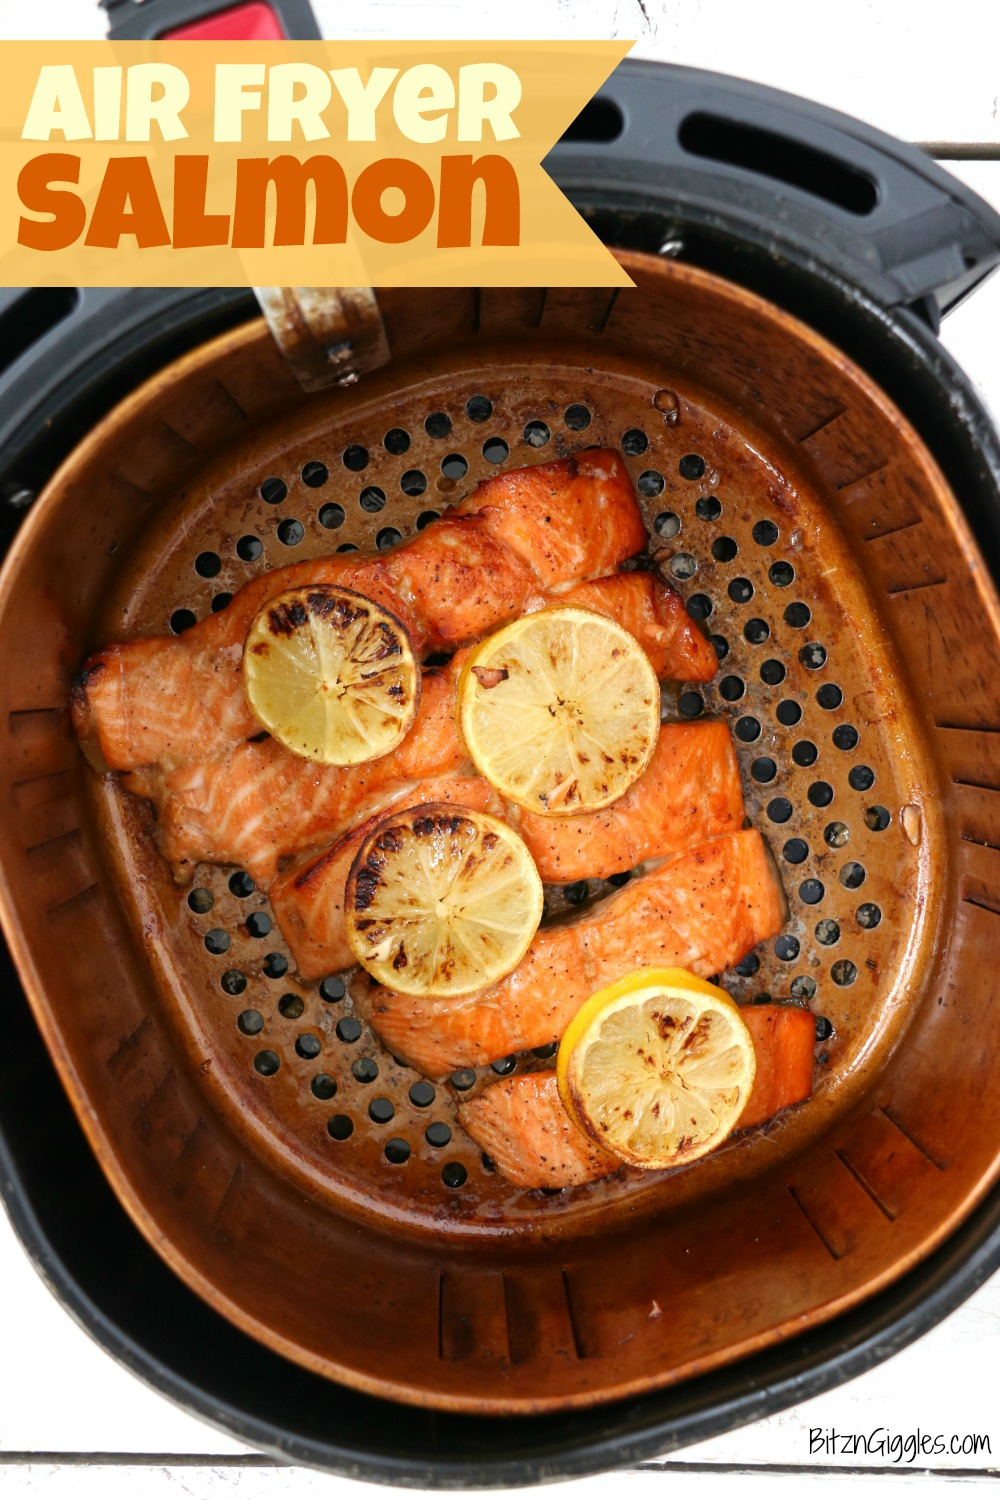 Salmon covered in lemon slices in air fryer basket